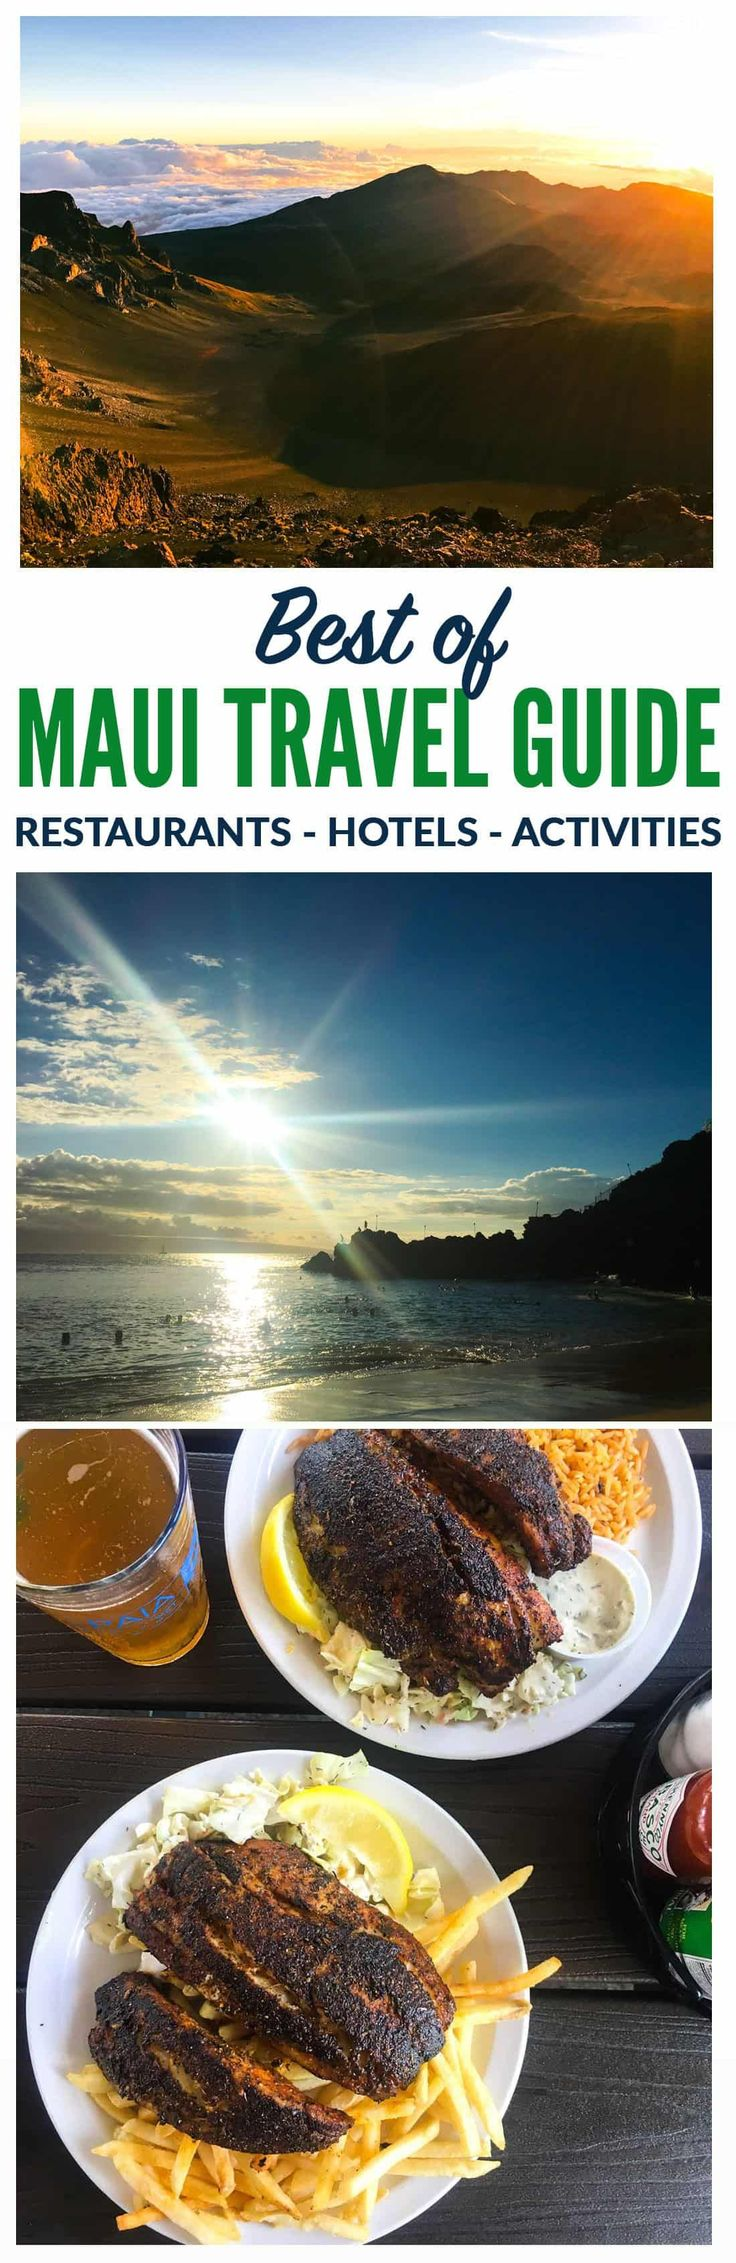 What to See, Do and Eat in Maui. Things to do, beaches, and best restaurants. This is the Ultimate Maui Travel Guide! Everything you need to know to plan the perfect trip. Includes a four day Maui itinerary with all of the top Maui sites and Maui restaurants. #maui #hawaii #travel via @wellplated